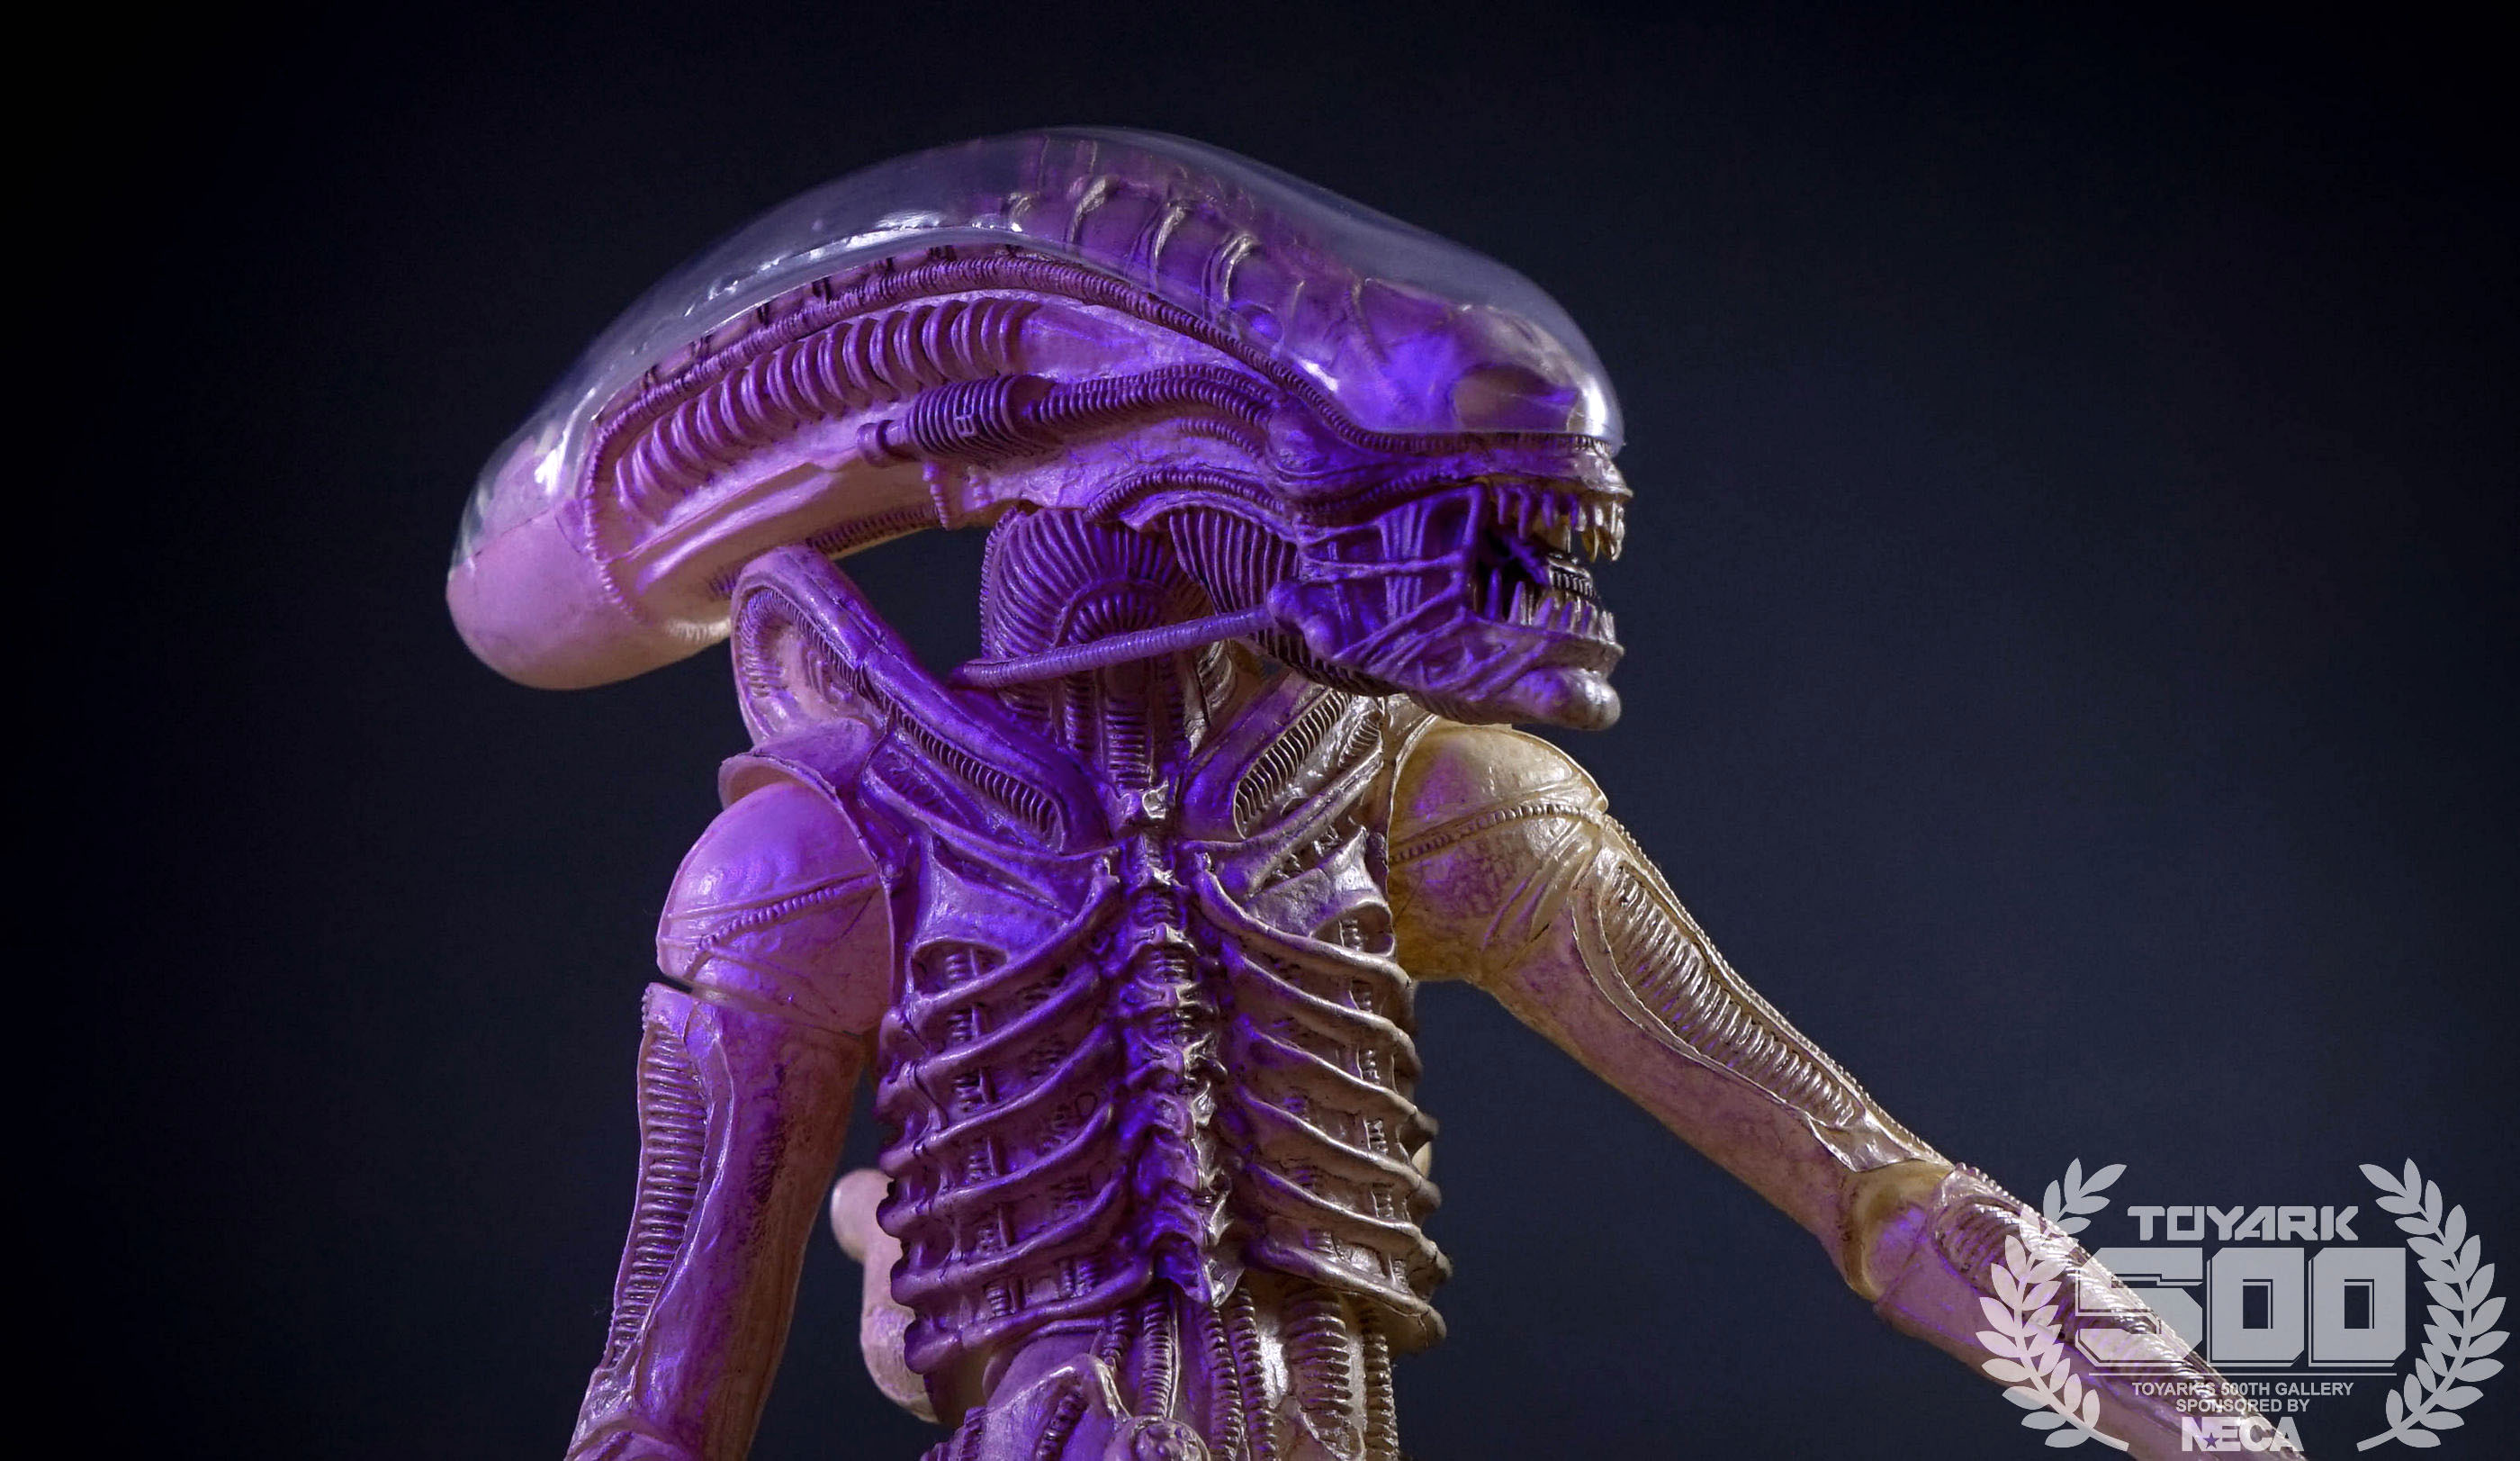 http://news.toyark.com/wp-content/uploads/sites/4/2016/01/Alien-Series-7-NECA-120.jpg